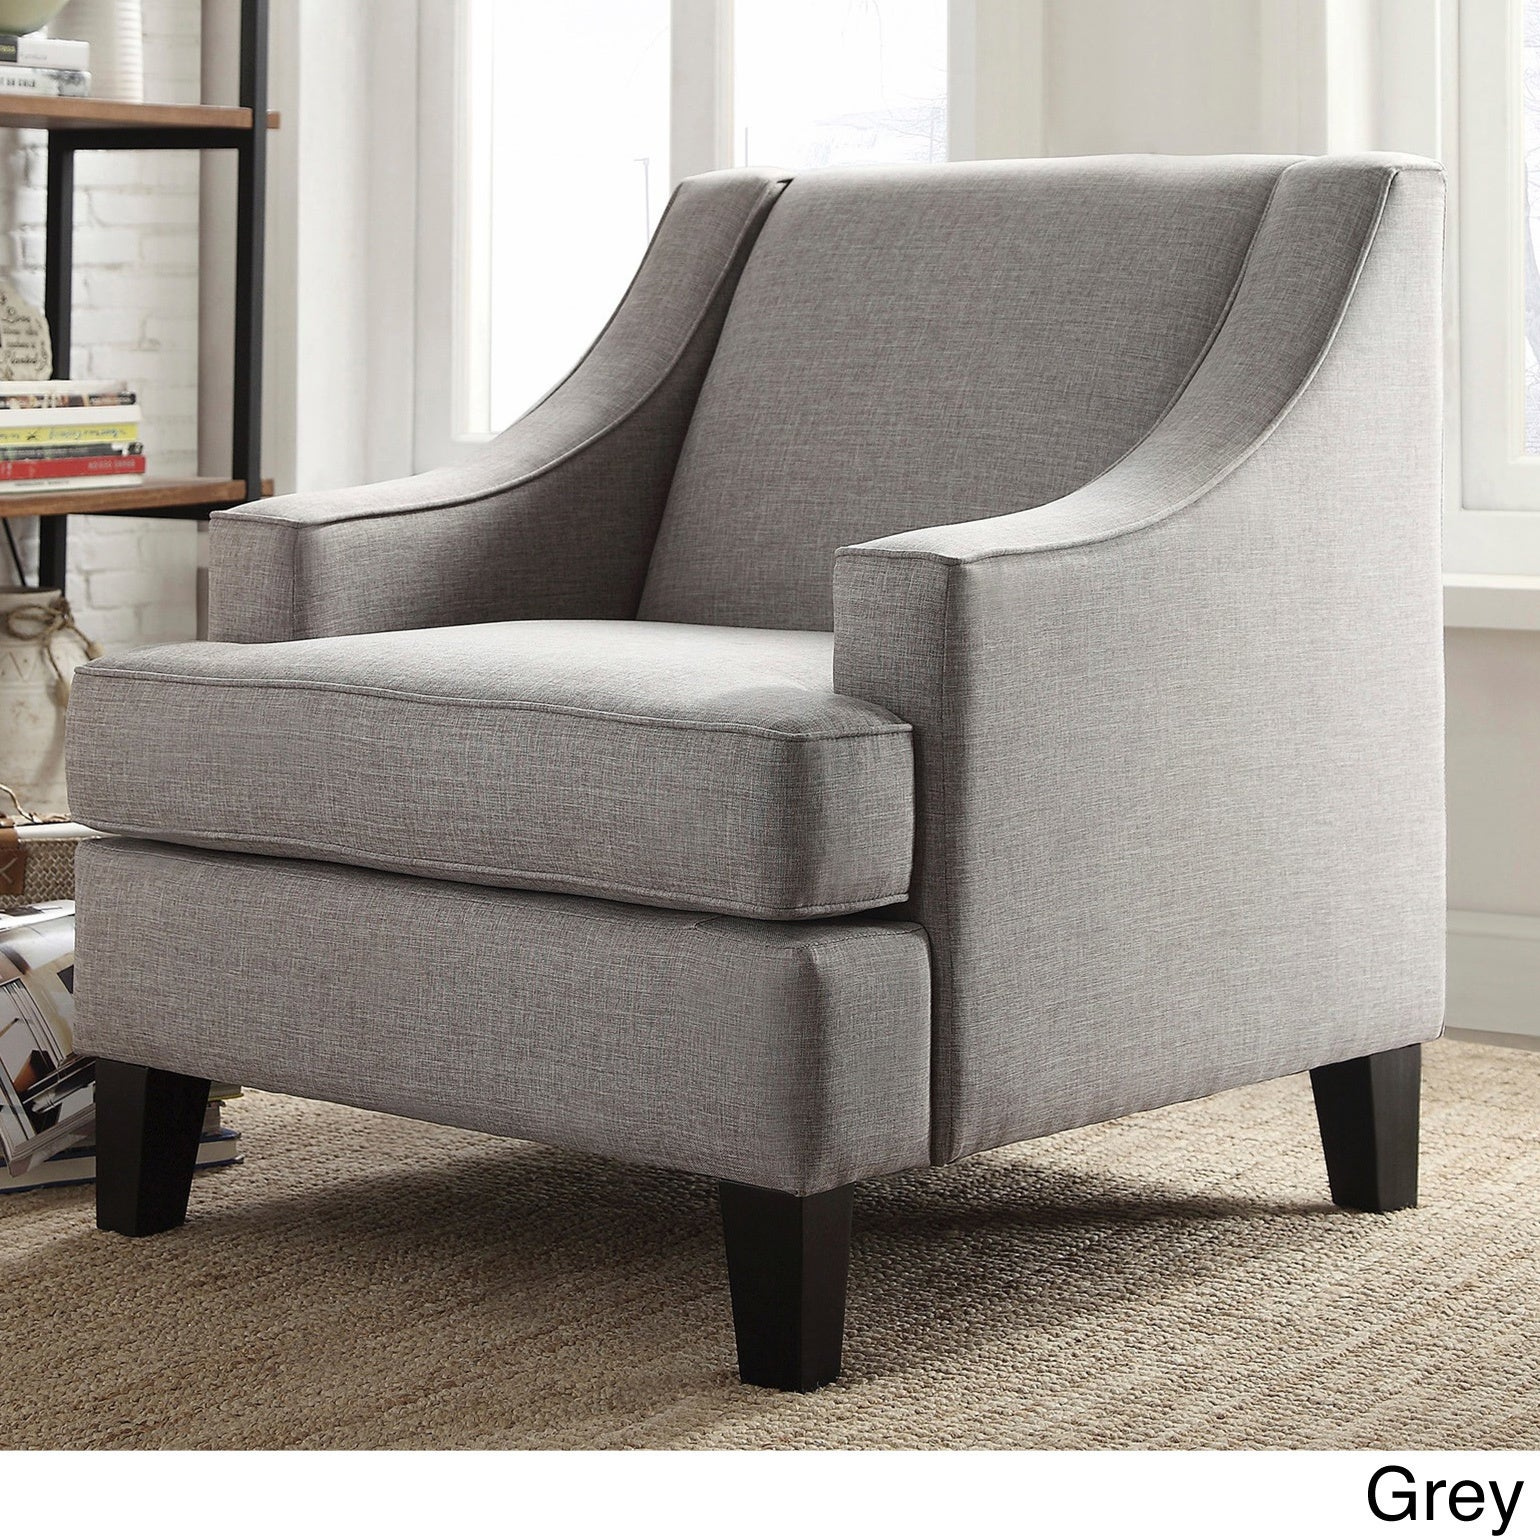 Winslow Concave Arm Modern Accent Chair by iNSPIRE Q Bold - Free Shipping  Today - Overstock.com - 13867505